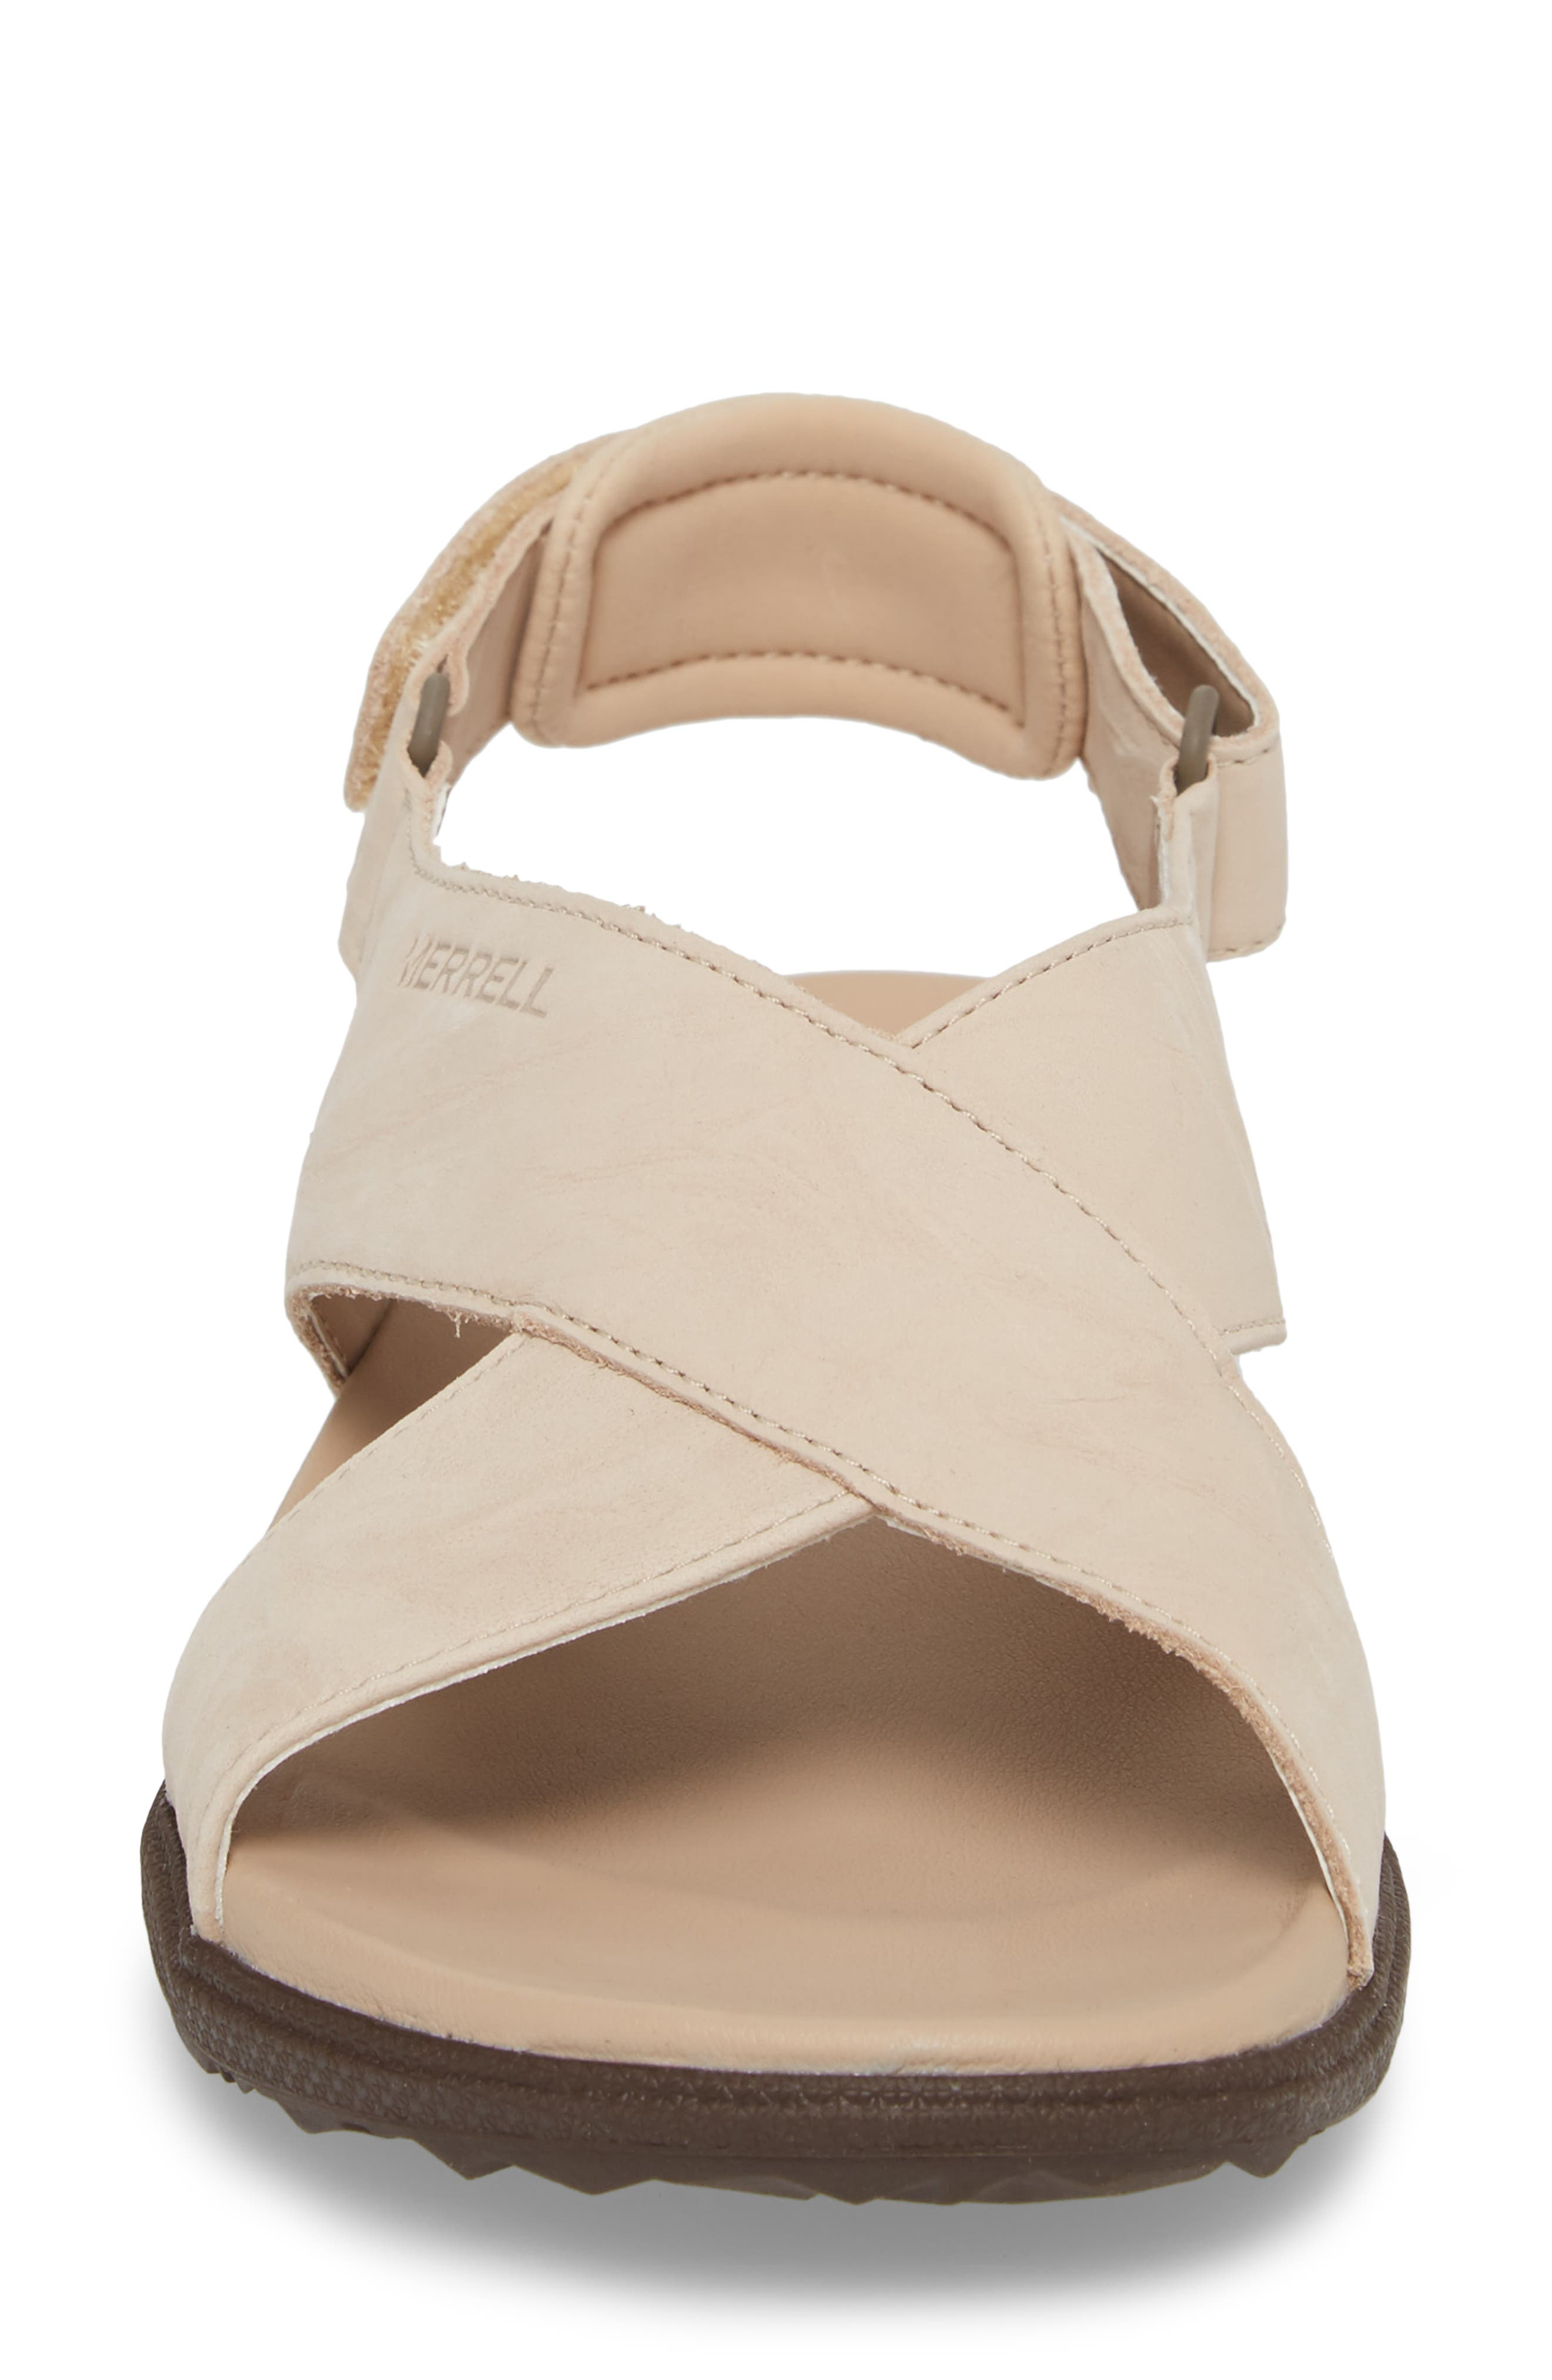 Around Town Sunvue Sandal,                             Alternate thumbnail 4, color,                             Natural Tan